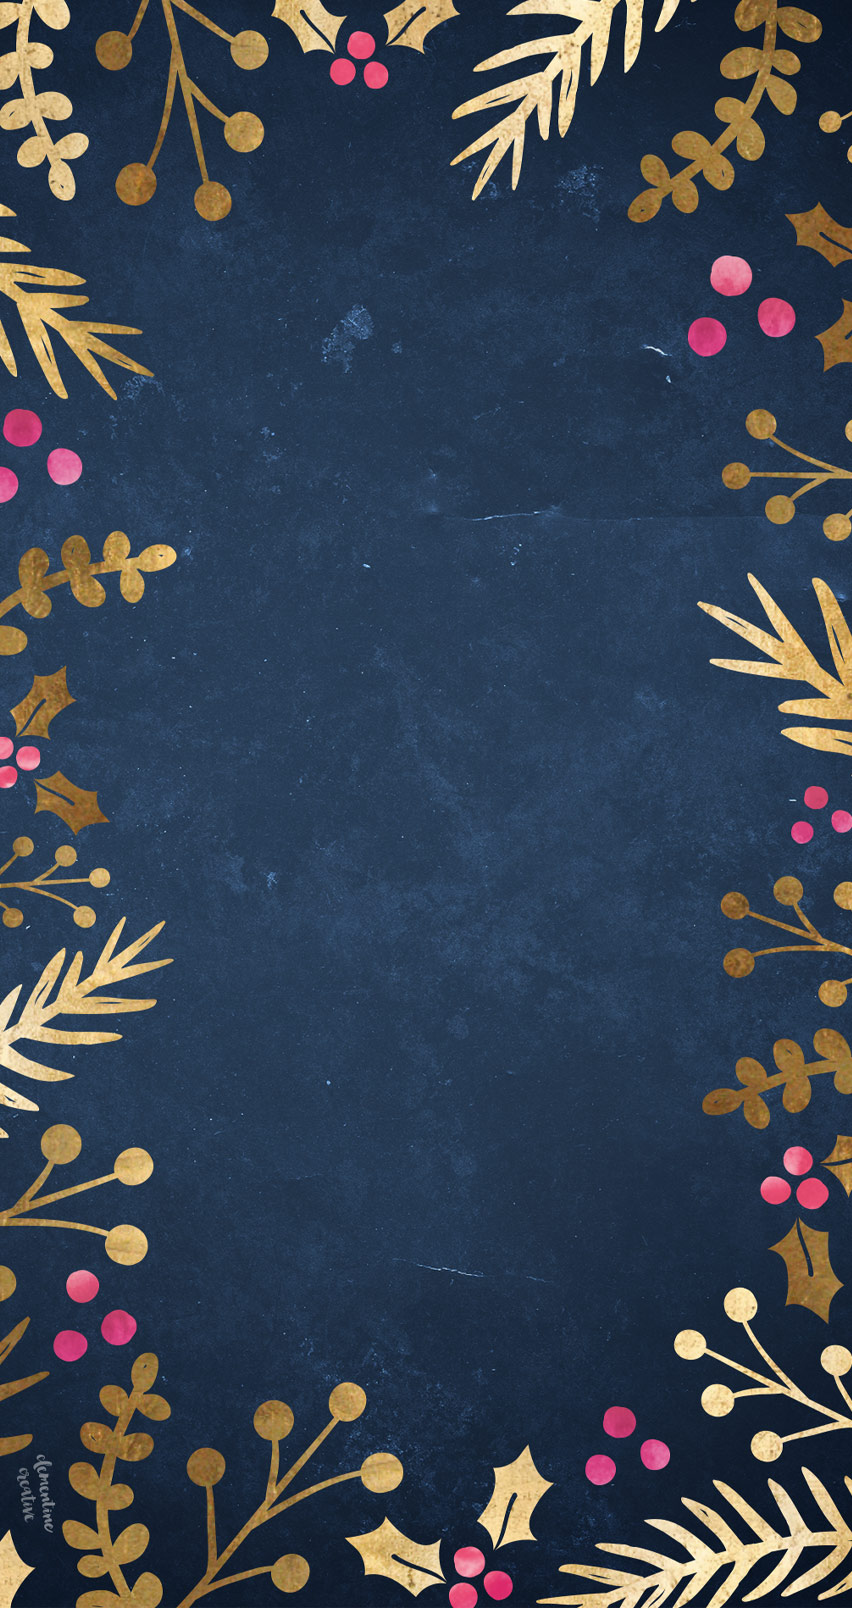 Free Festive Wallpaper: Gold Foil Foliage | iPhone backgrounds